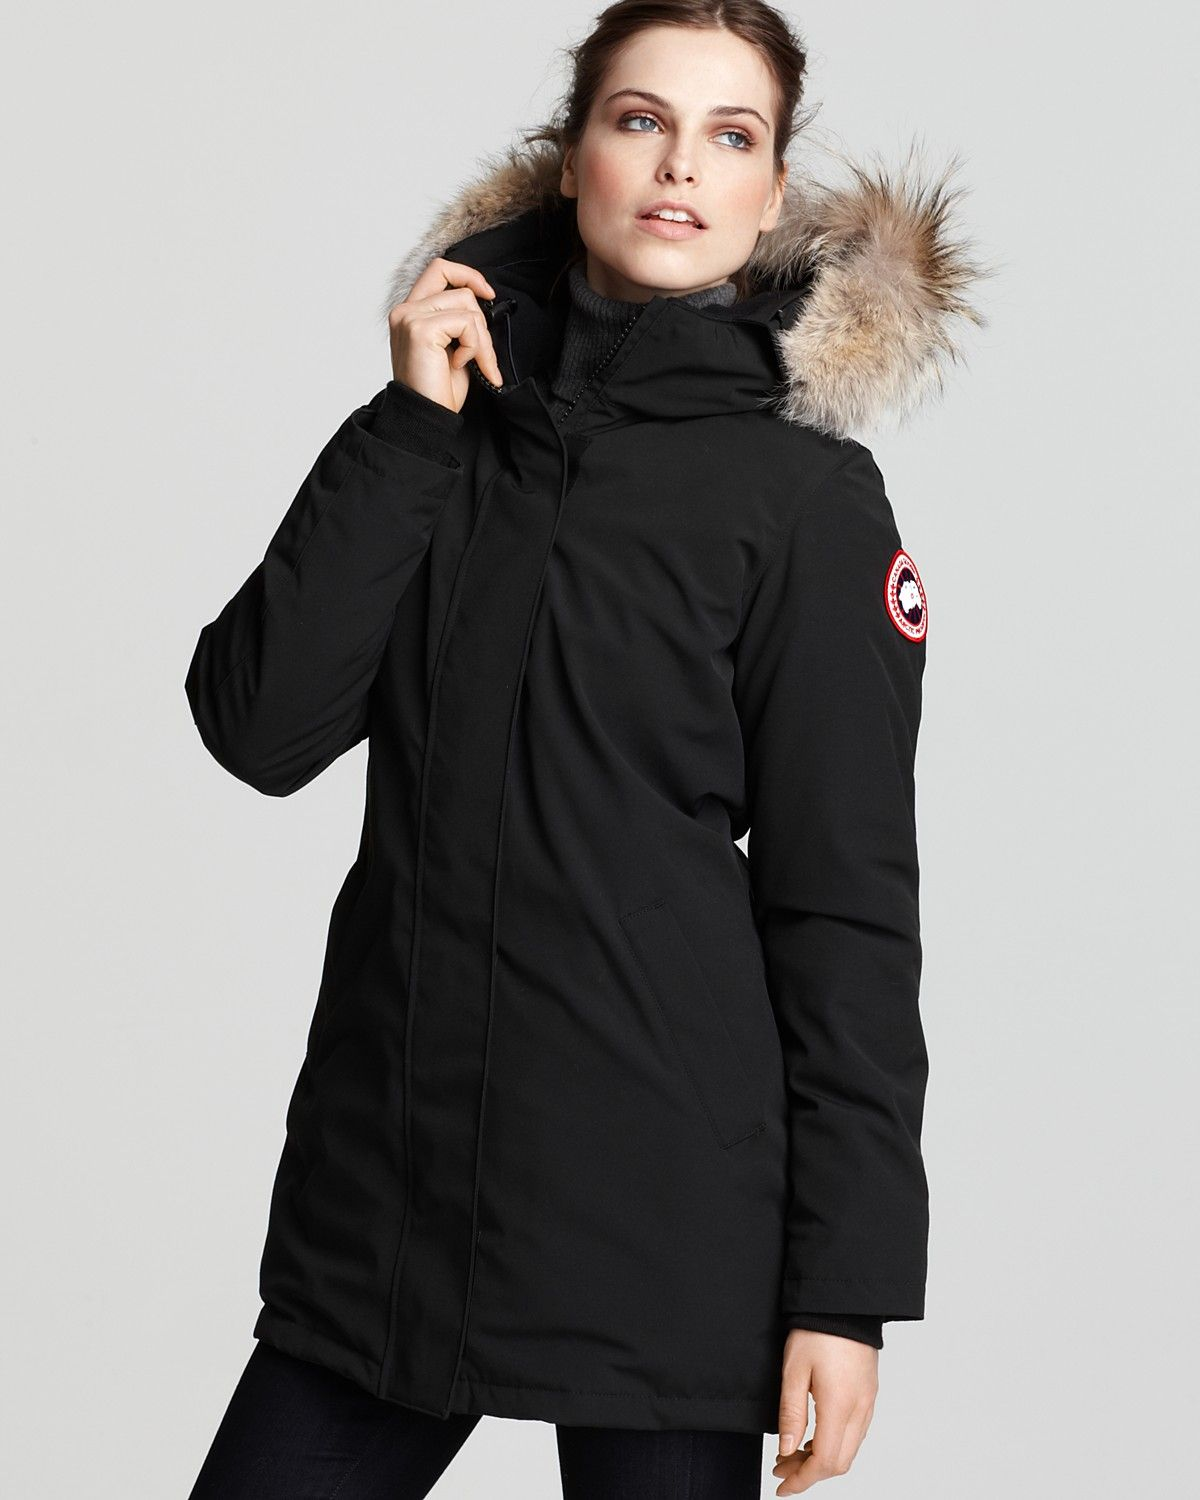 Canada Goose Victoria Parka - Women's - Bloomingdale's $650